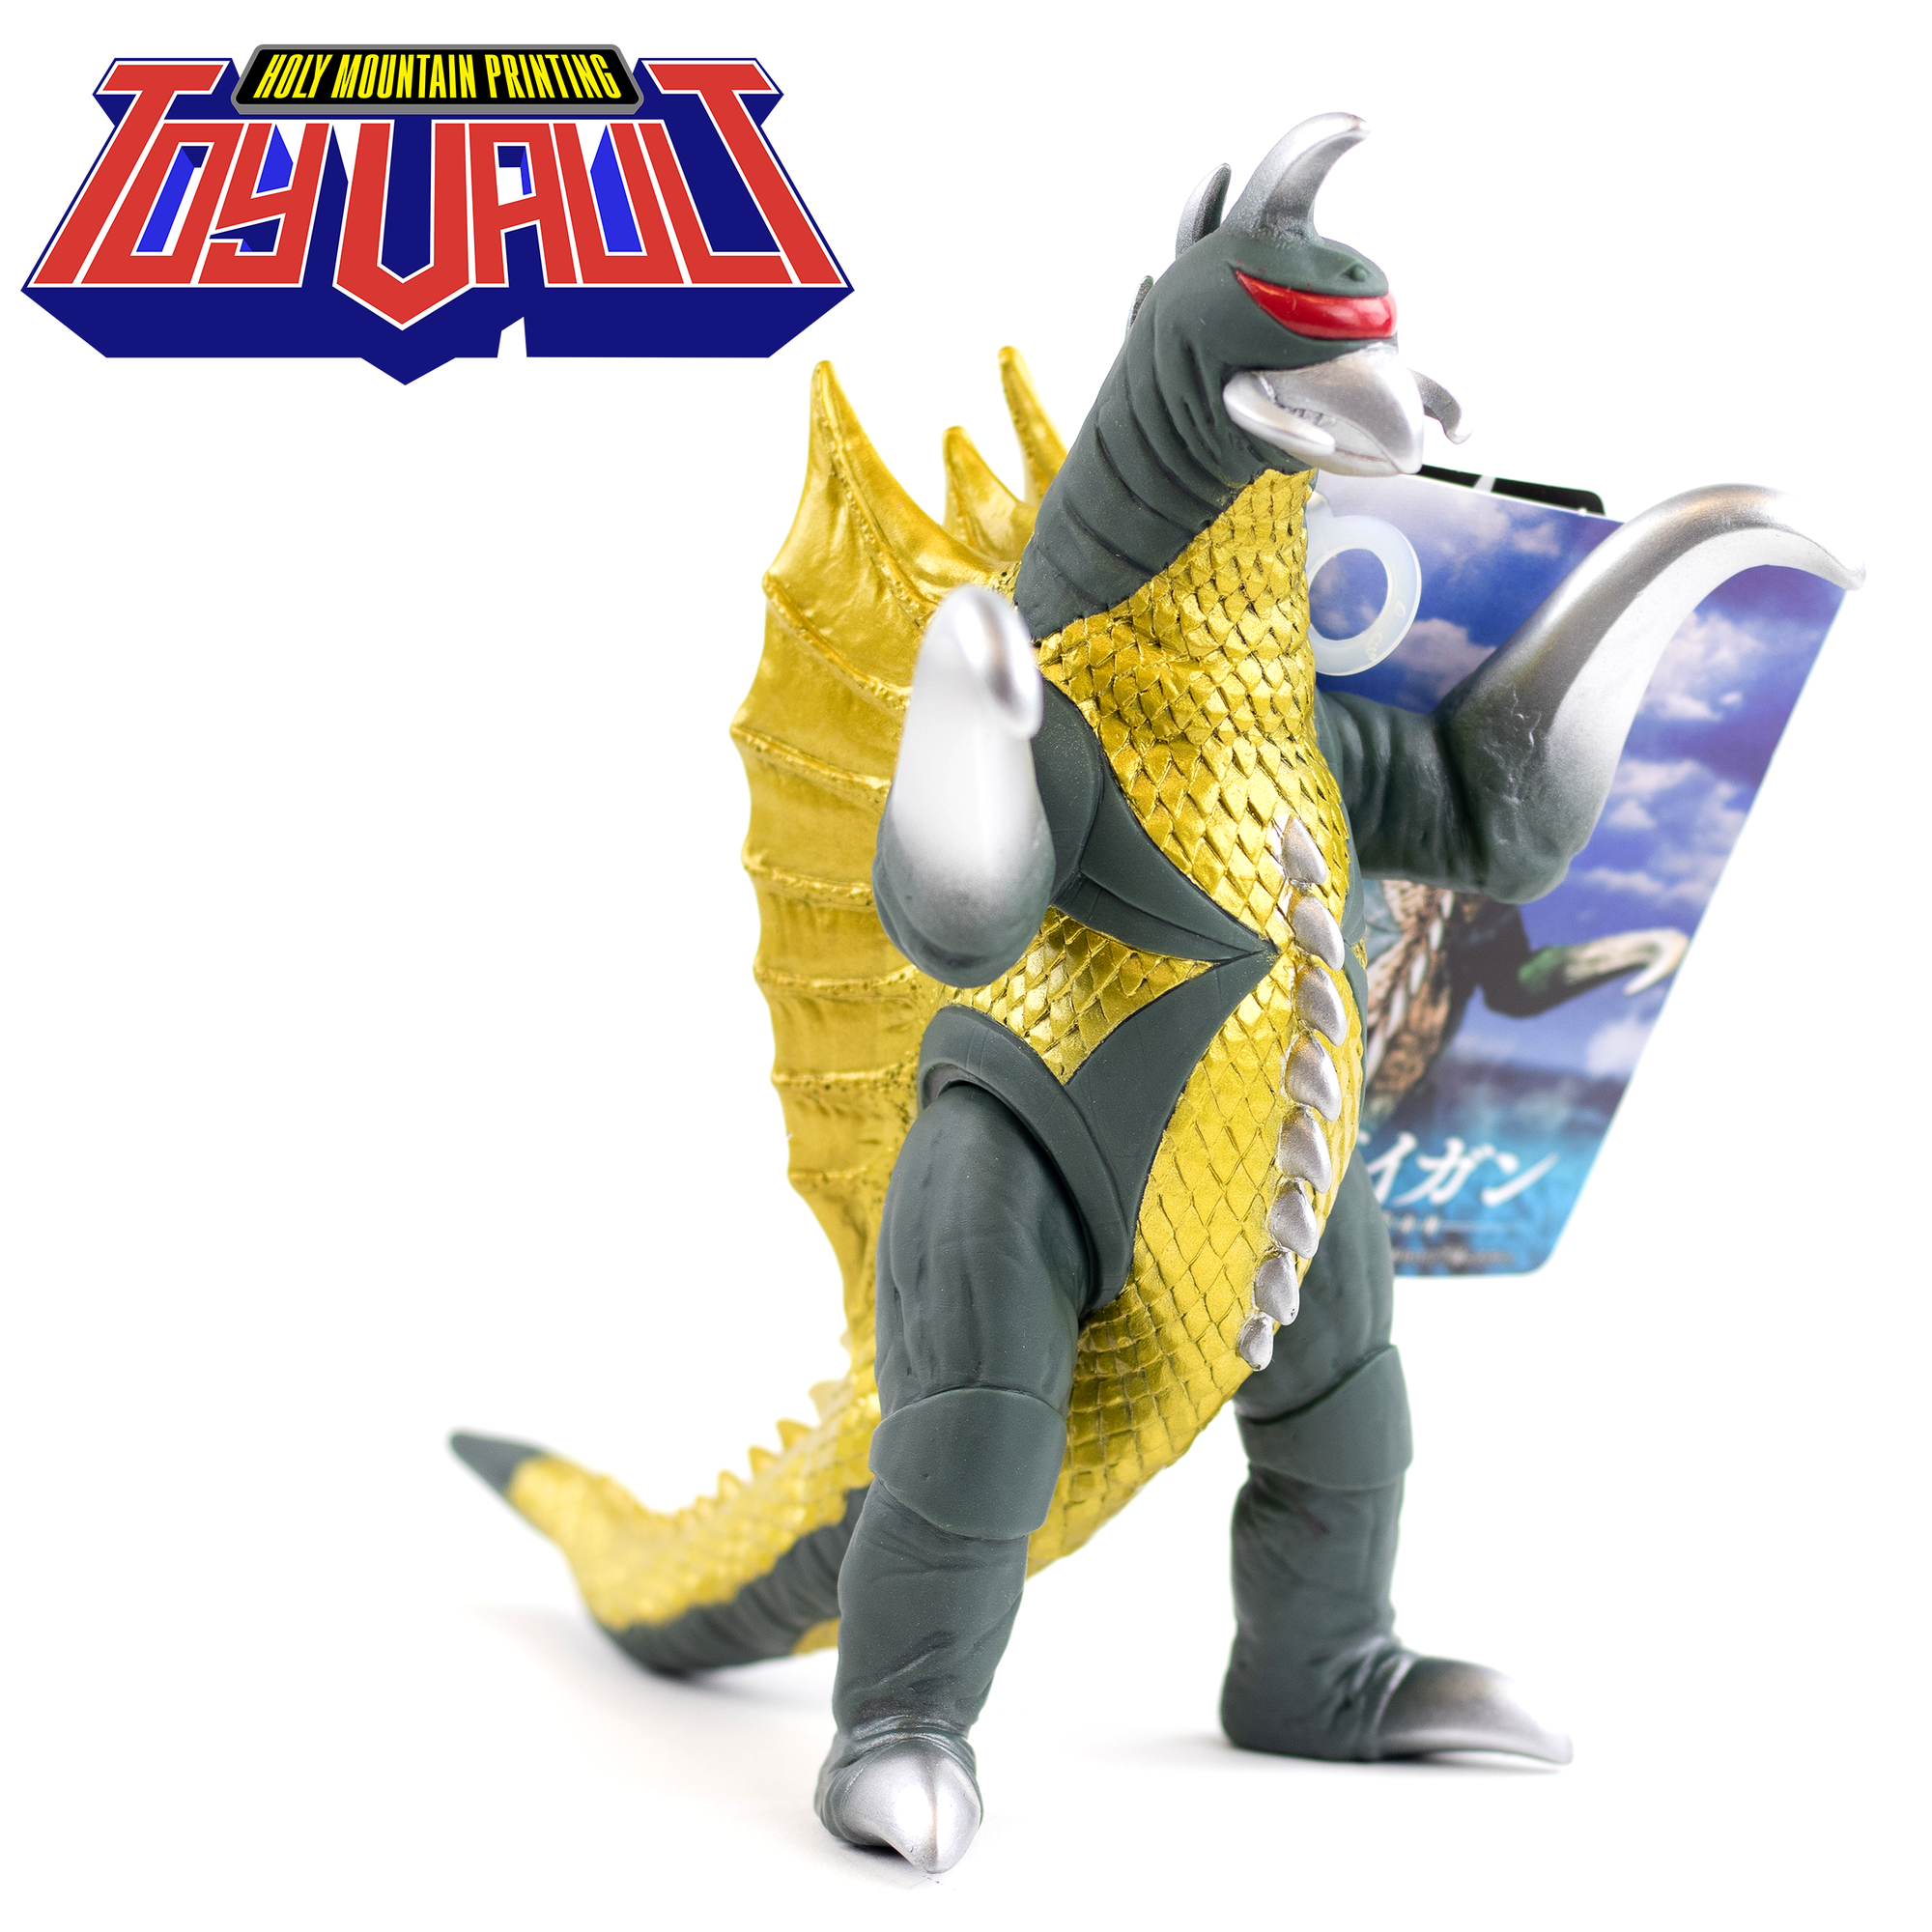 BANDAI - MOVIE MONSTER SERIES GIGAN (CLASSIC)